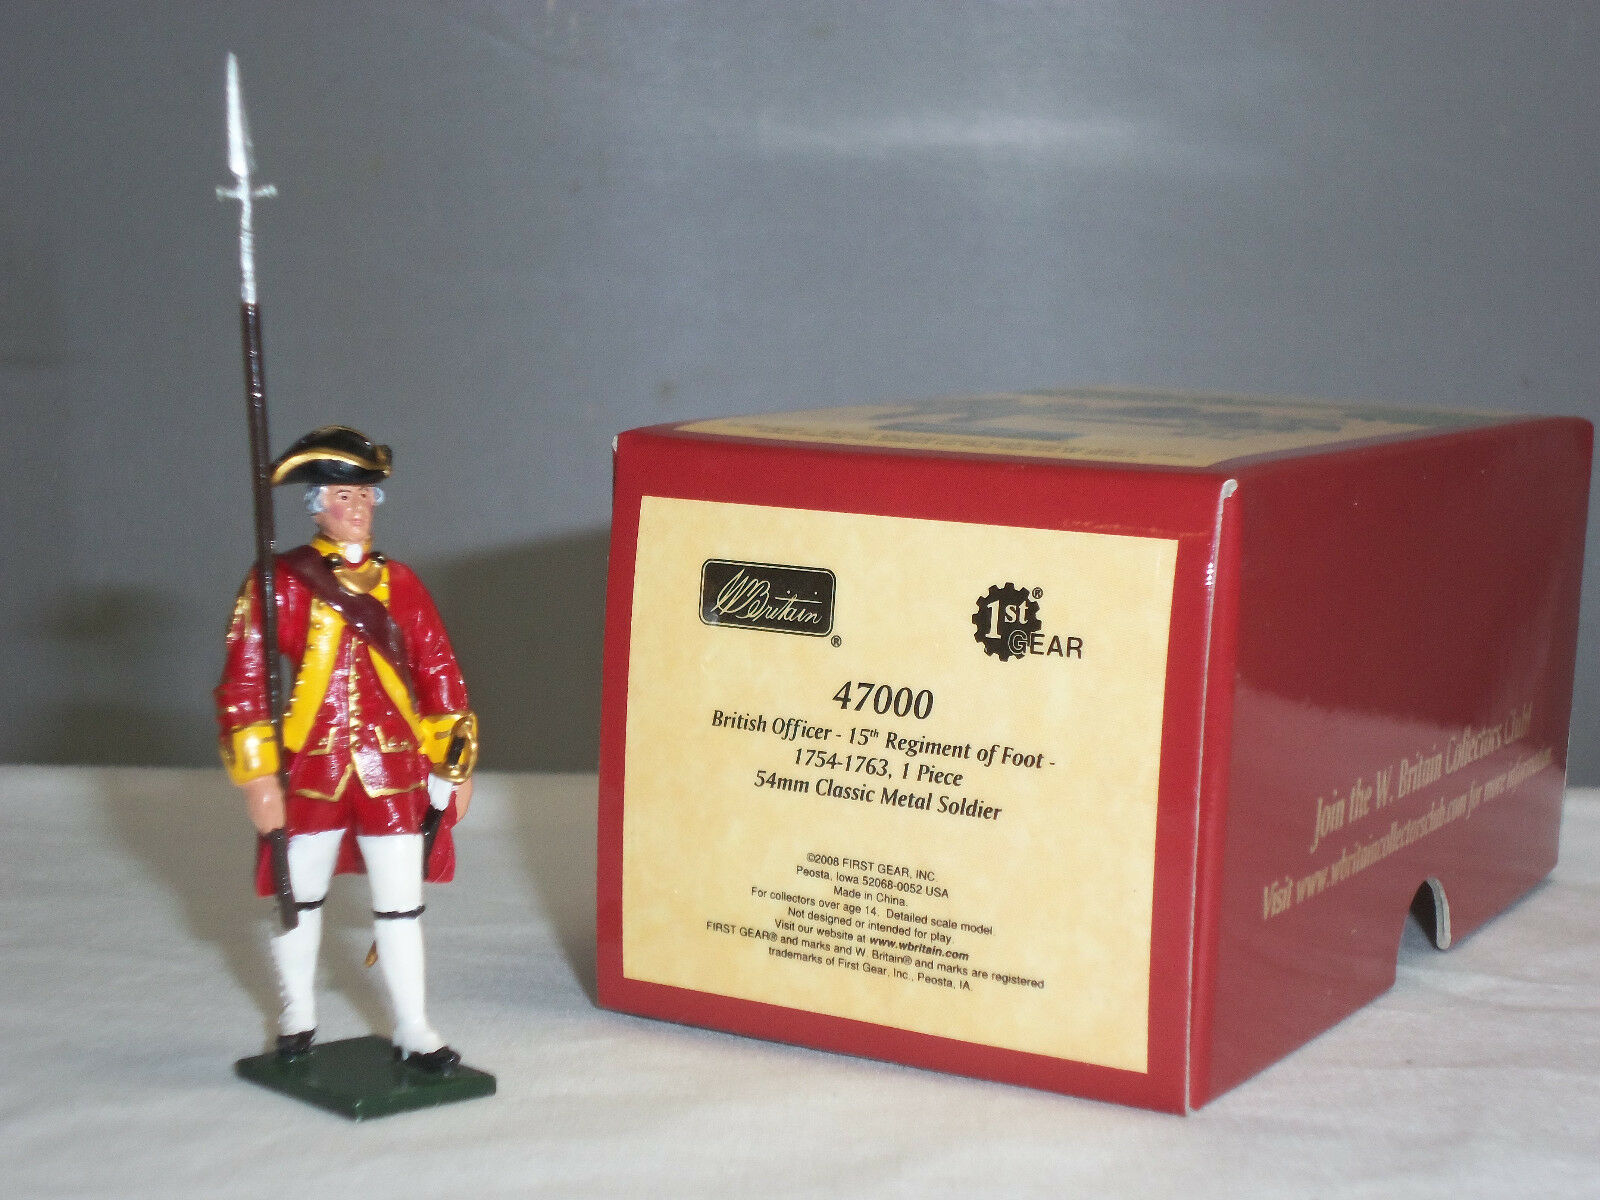 BRITAINS 47000 REDCOATS BRITISH 15TH REGIMENT OF FOOT OFFICER METAL TOY SOLDIER